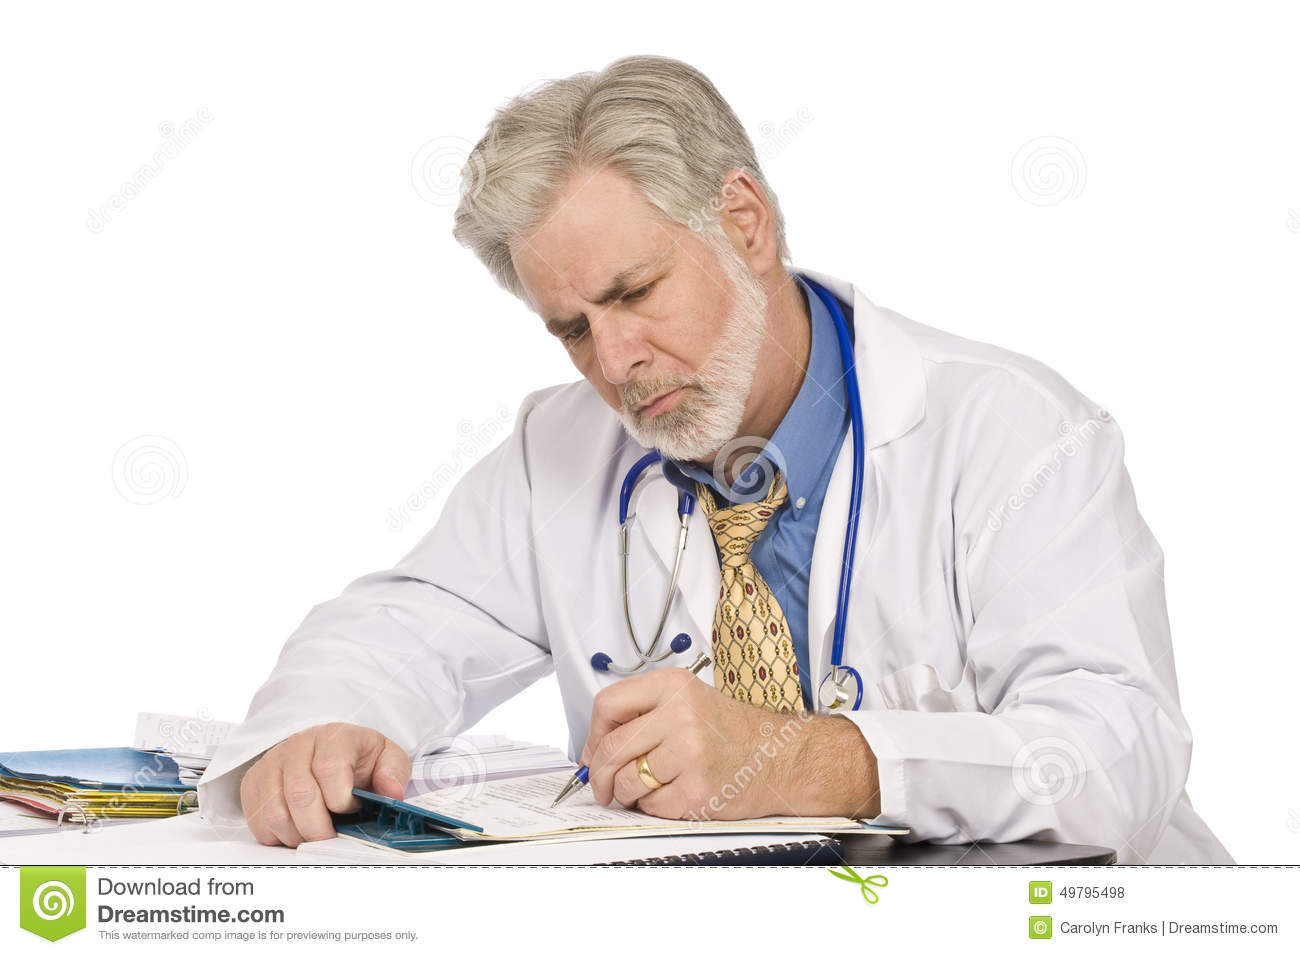 113308 Doctor Stuff Icon together with 684 Acres Of Land With Access To St Lawrence River Ready For Development likewise Conception Du Cabi  Dentaire 929532596232 besides Informatics Discovery Lab also Stock Photo Doctor  pleting Paperwork Middle Aged Male Deep Concentration His Image49795498. on medical doctor s office